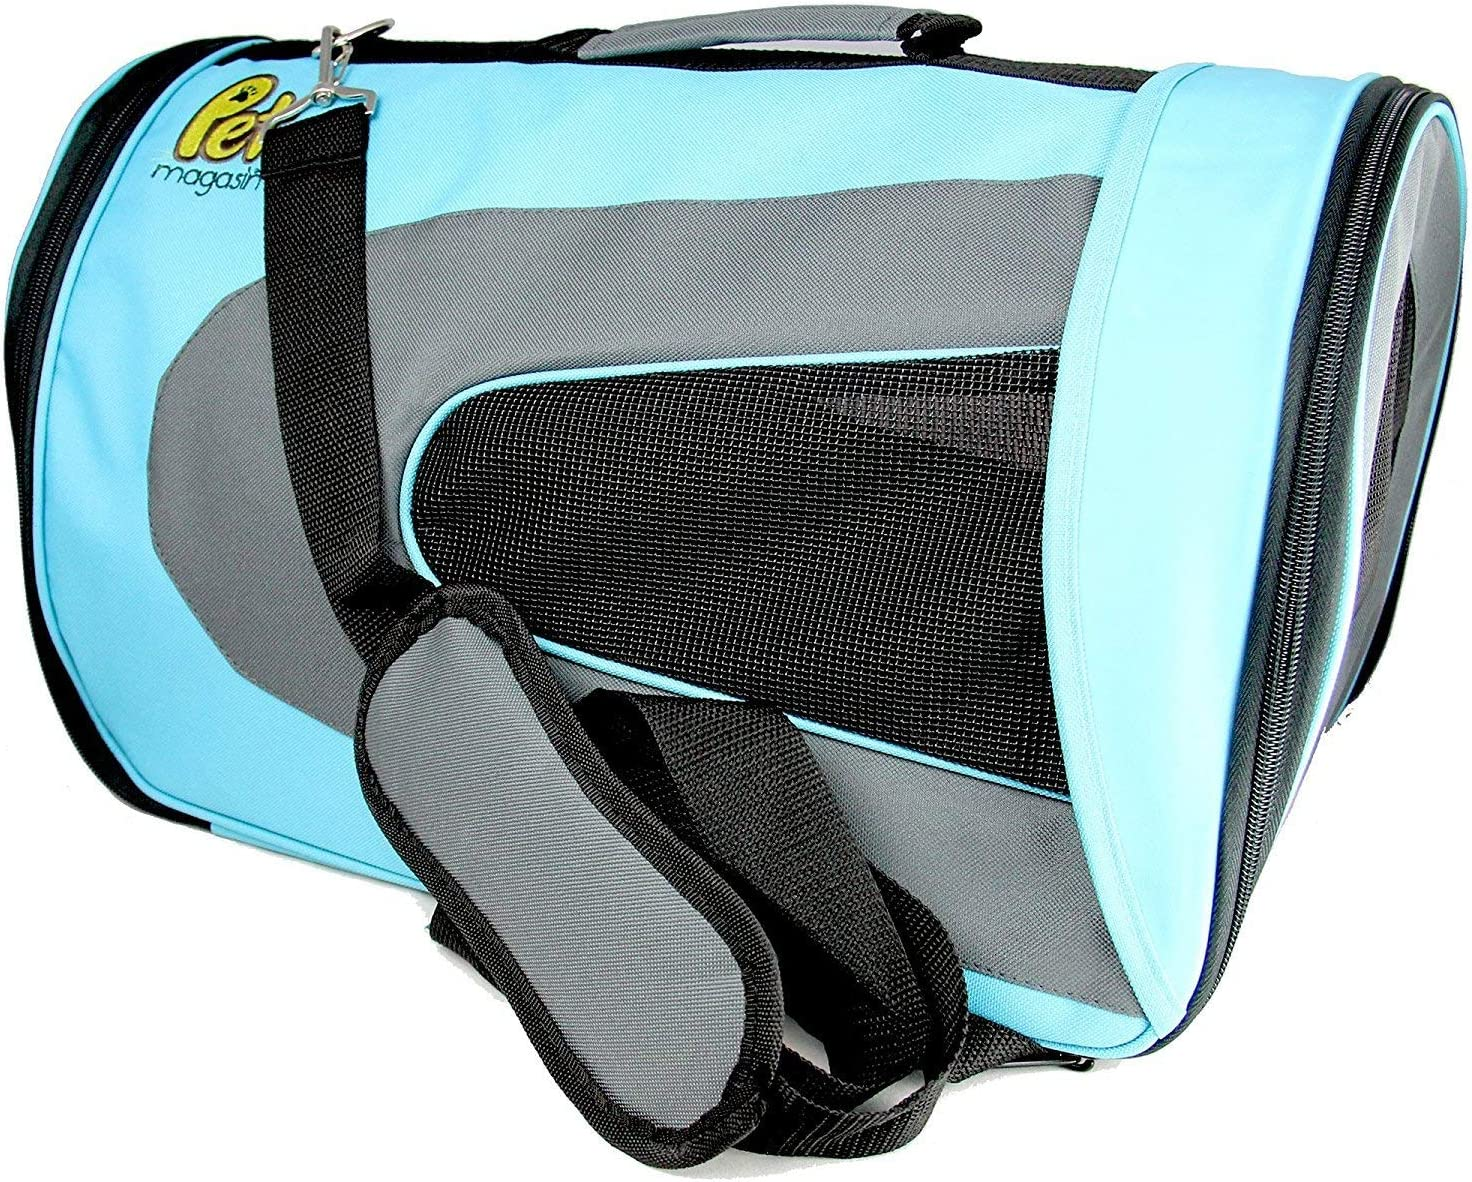 Pet Magasin Soft-Sided Pet Travel Carrier (Airline Approved) for Cats, Small Dogs, Puppies and Other Pets by (Large, Blue) : Pet Supplies